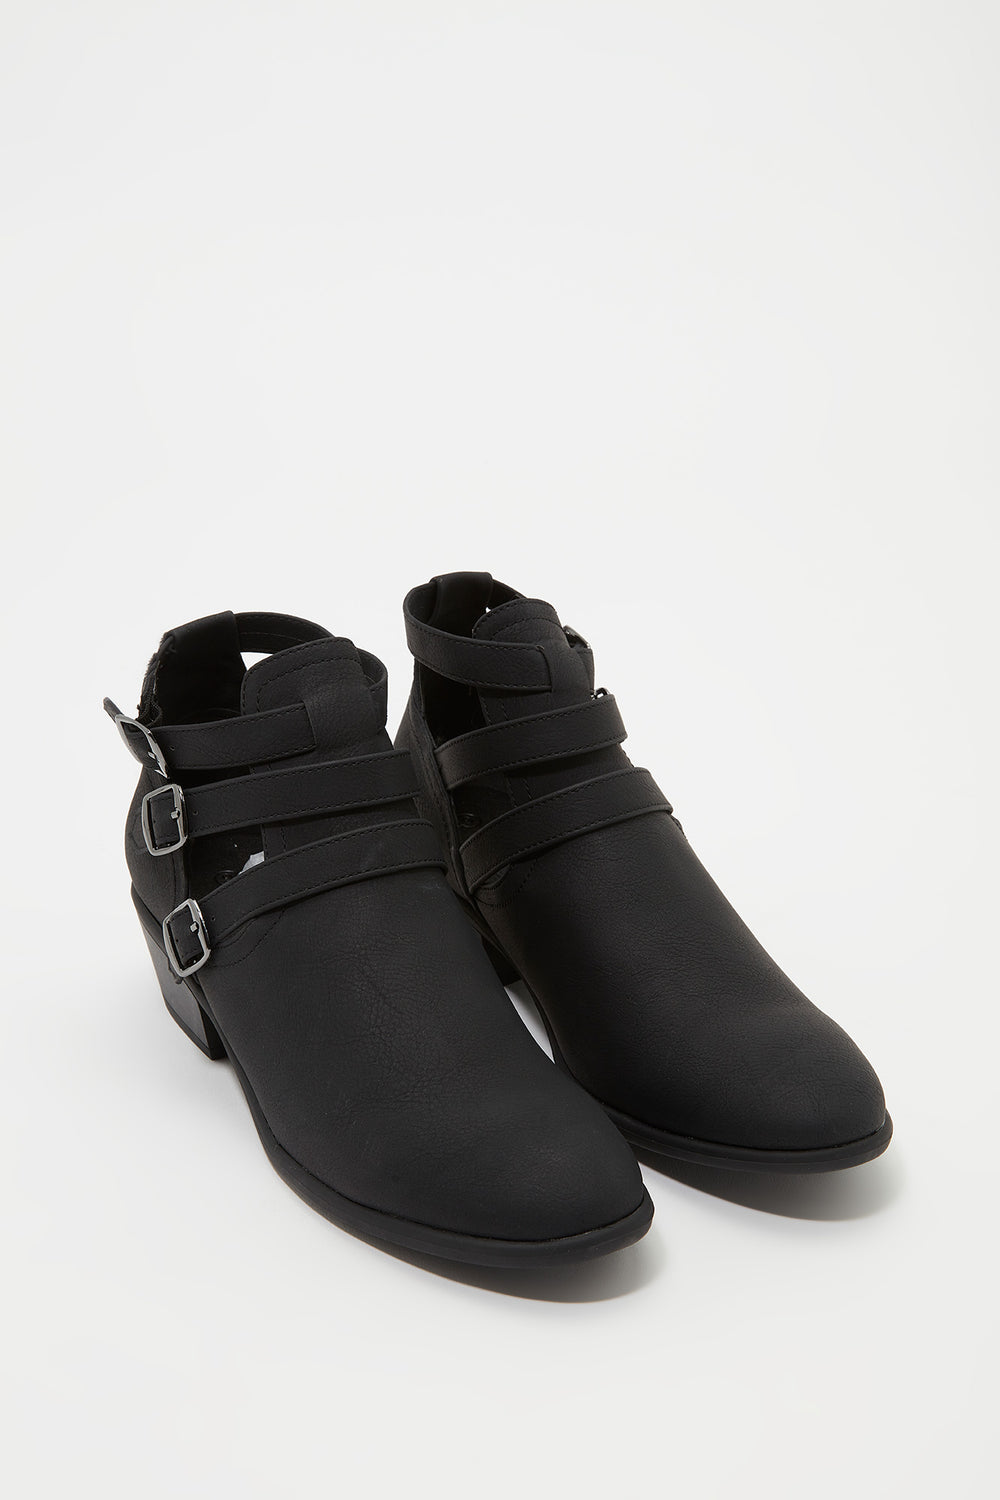 3 Buckle Strap Chelsea Boot Black